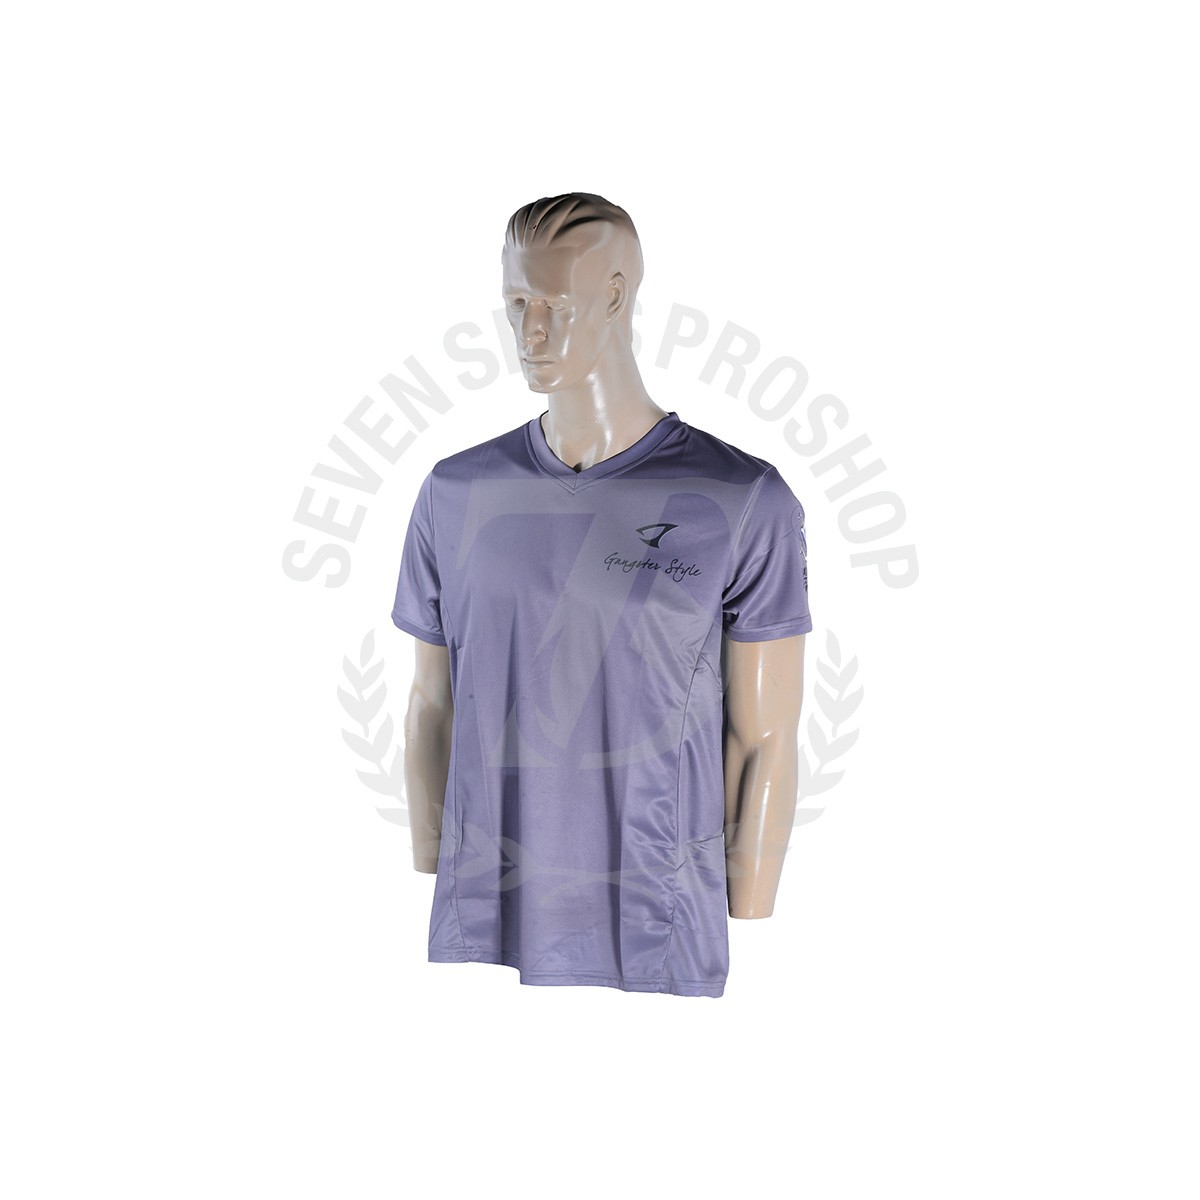 JIGGING MASTER GANGSTER STYLE QUICK DRY SHORT SLEEVE T-shirt